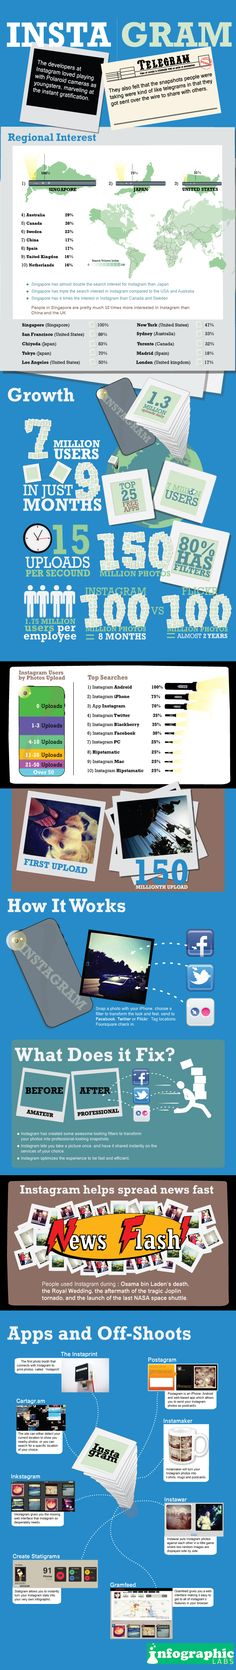 El auge de Instagram | Rise of Instagram « Infografías de Marketing